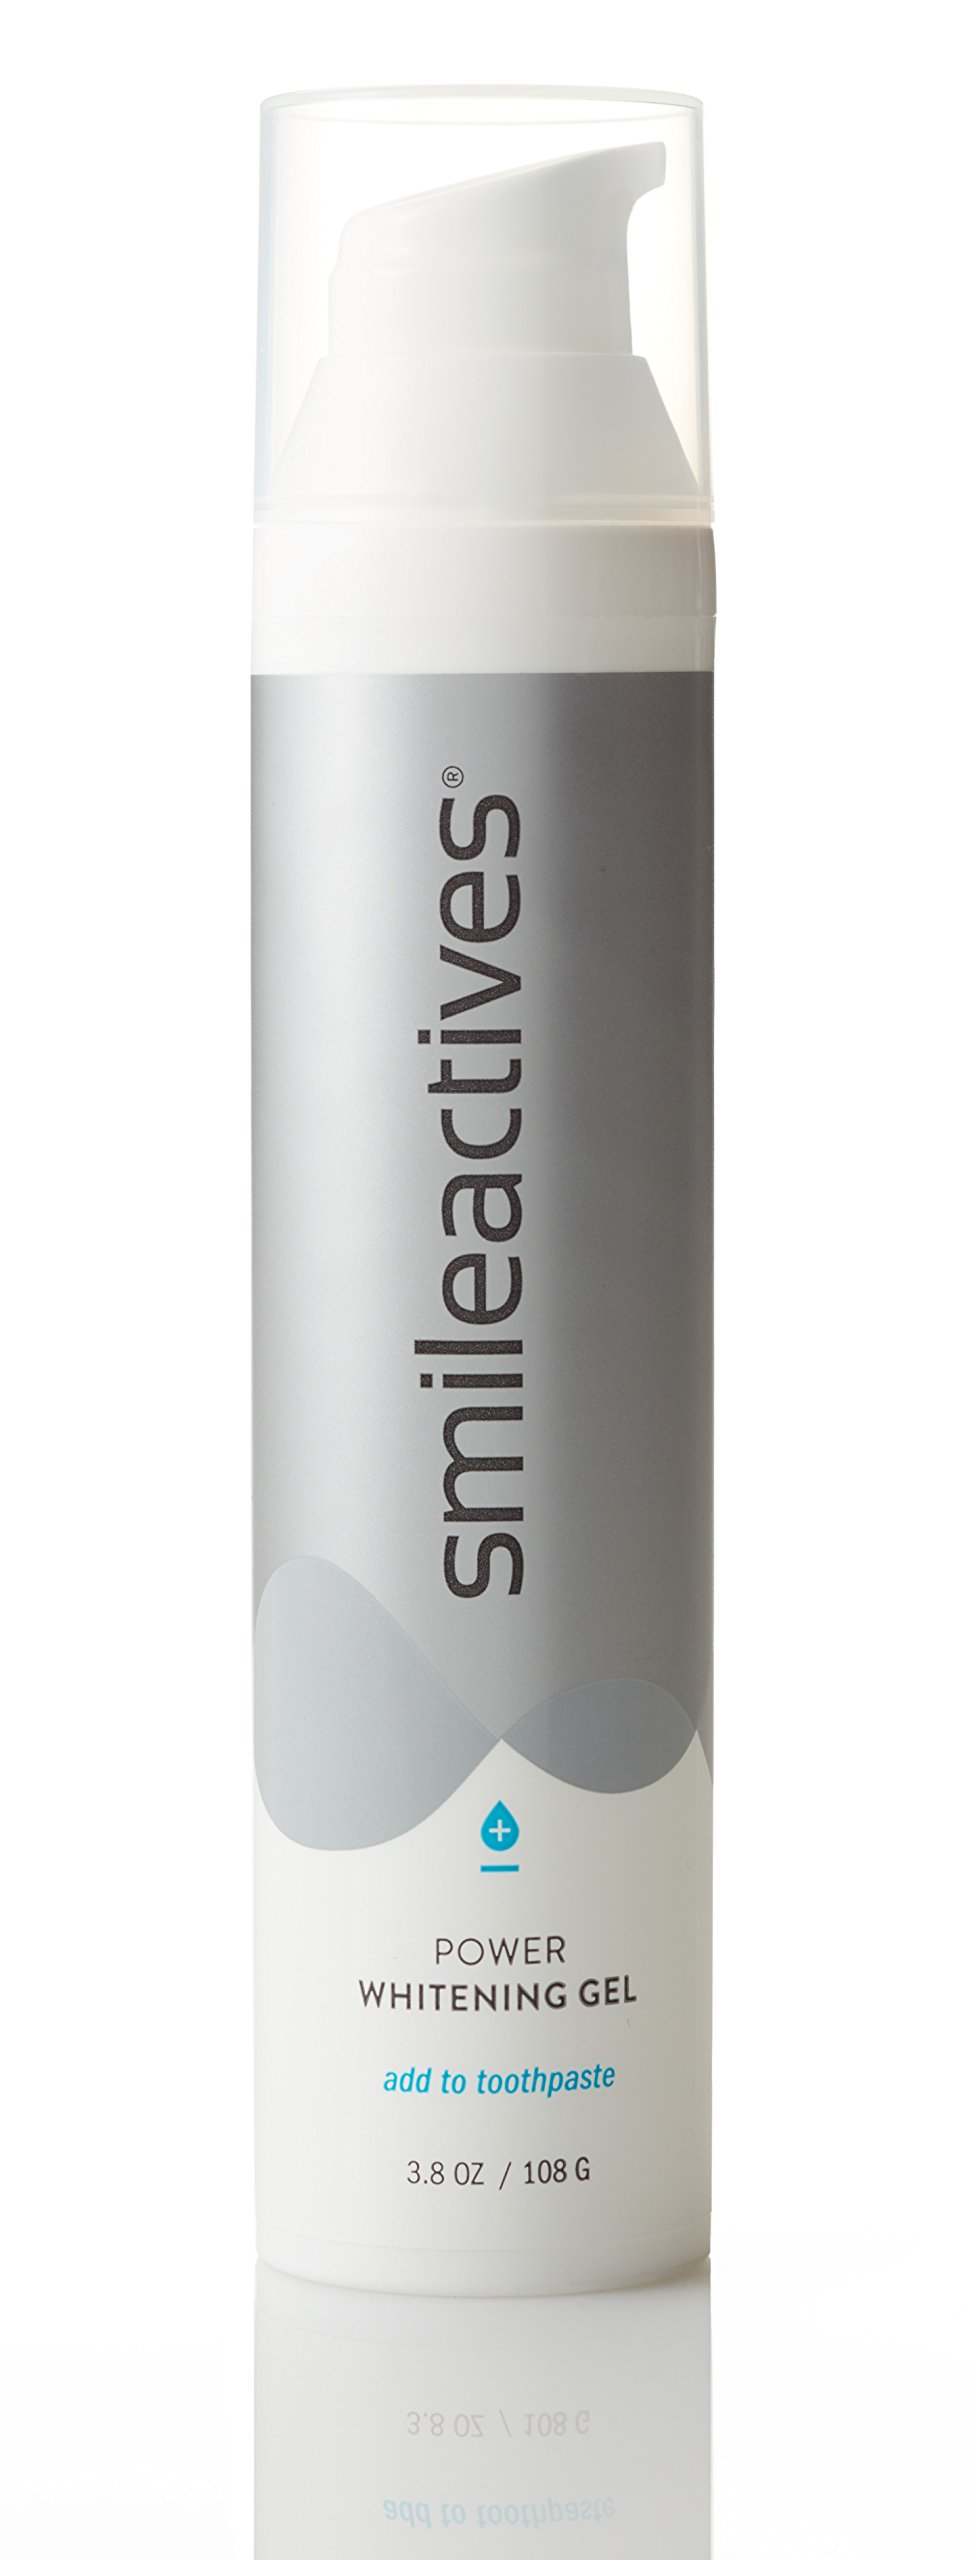 smileactives – Power Whitening Gel – Teeth Whitening and Brightening with Polyclean Technology – 90 Day Supply/3.8 Ounces